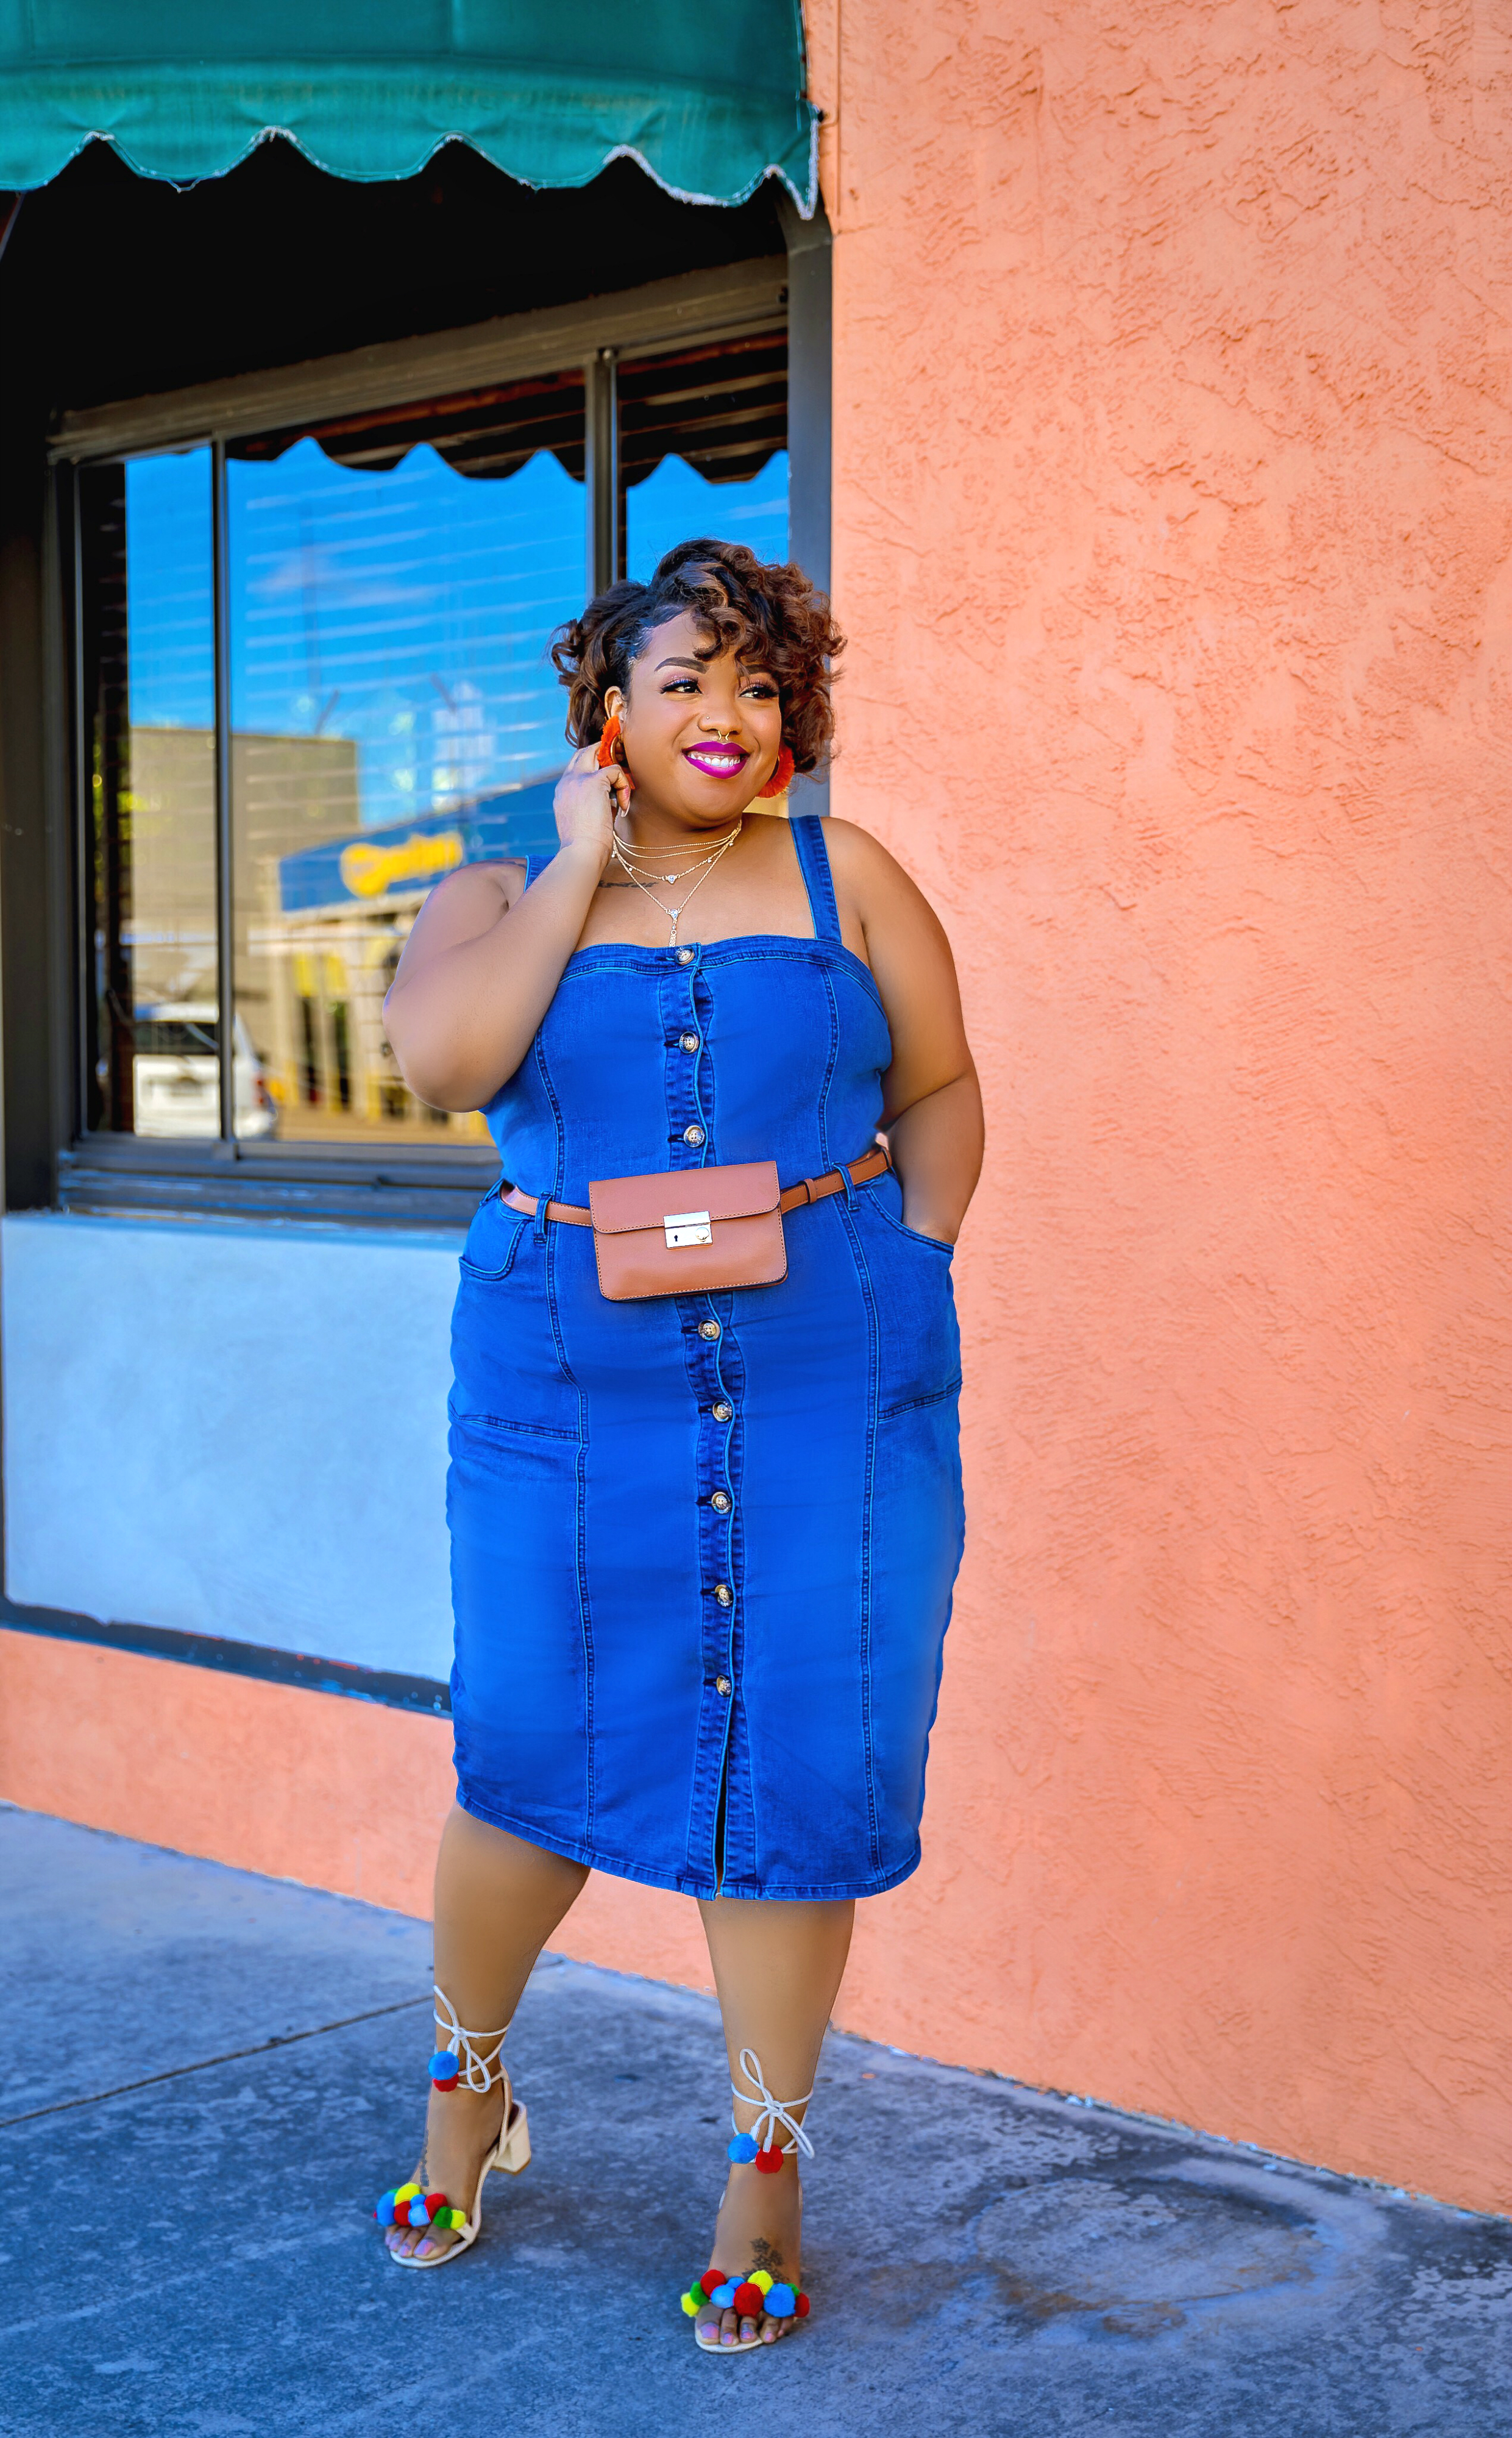 %Plus Size Clothing & Fashion%Plus Size Women